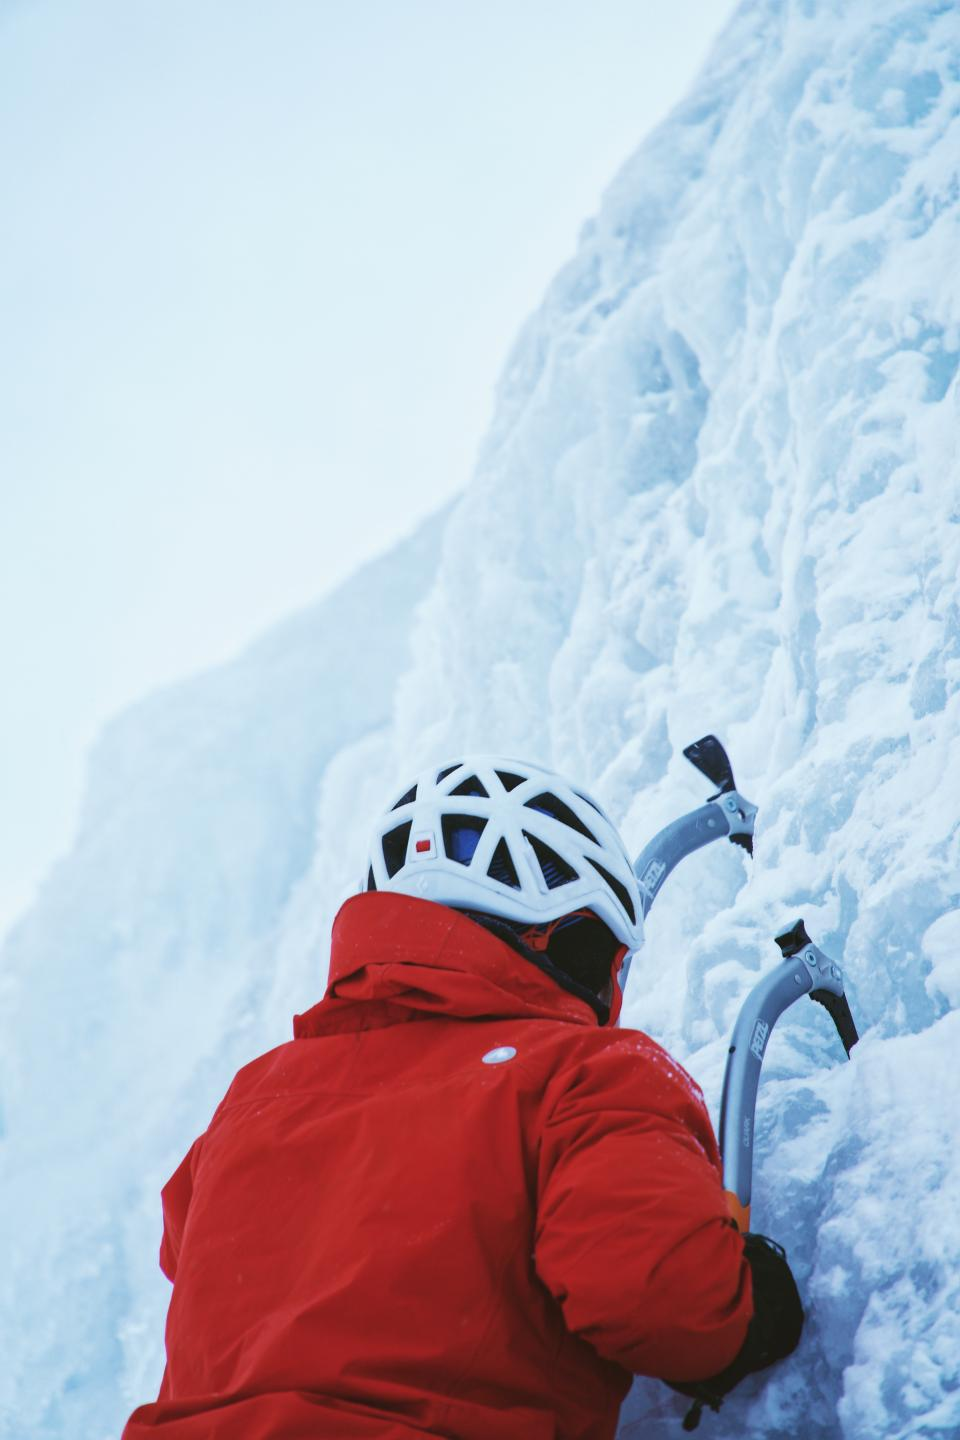 snow, winter, white, cold, weather, ice, nature, people, man, helmet, climb, mountaineer